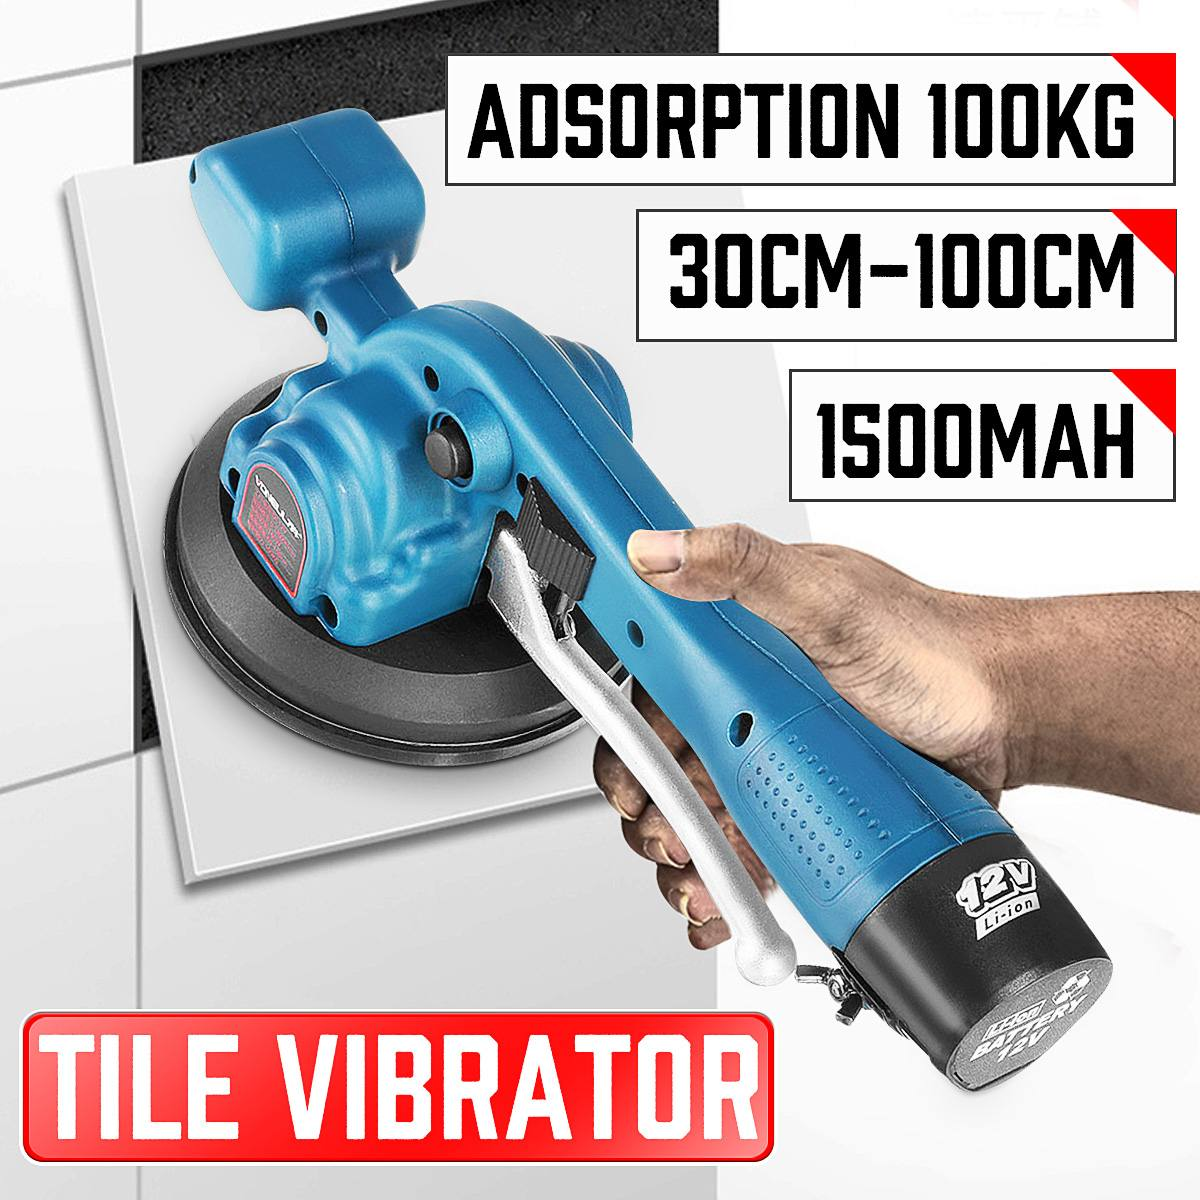 Professional Tiling Tool Auto Floor Tile Leveling Machine Construction Tools Tile Vibrator Pressure Tool Carrelage Outil